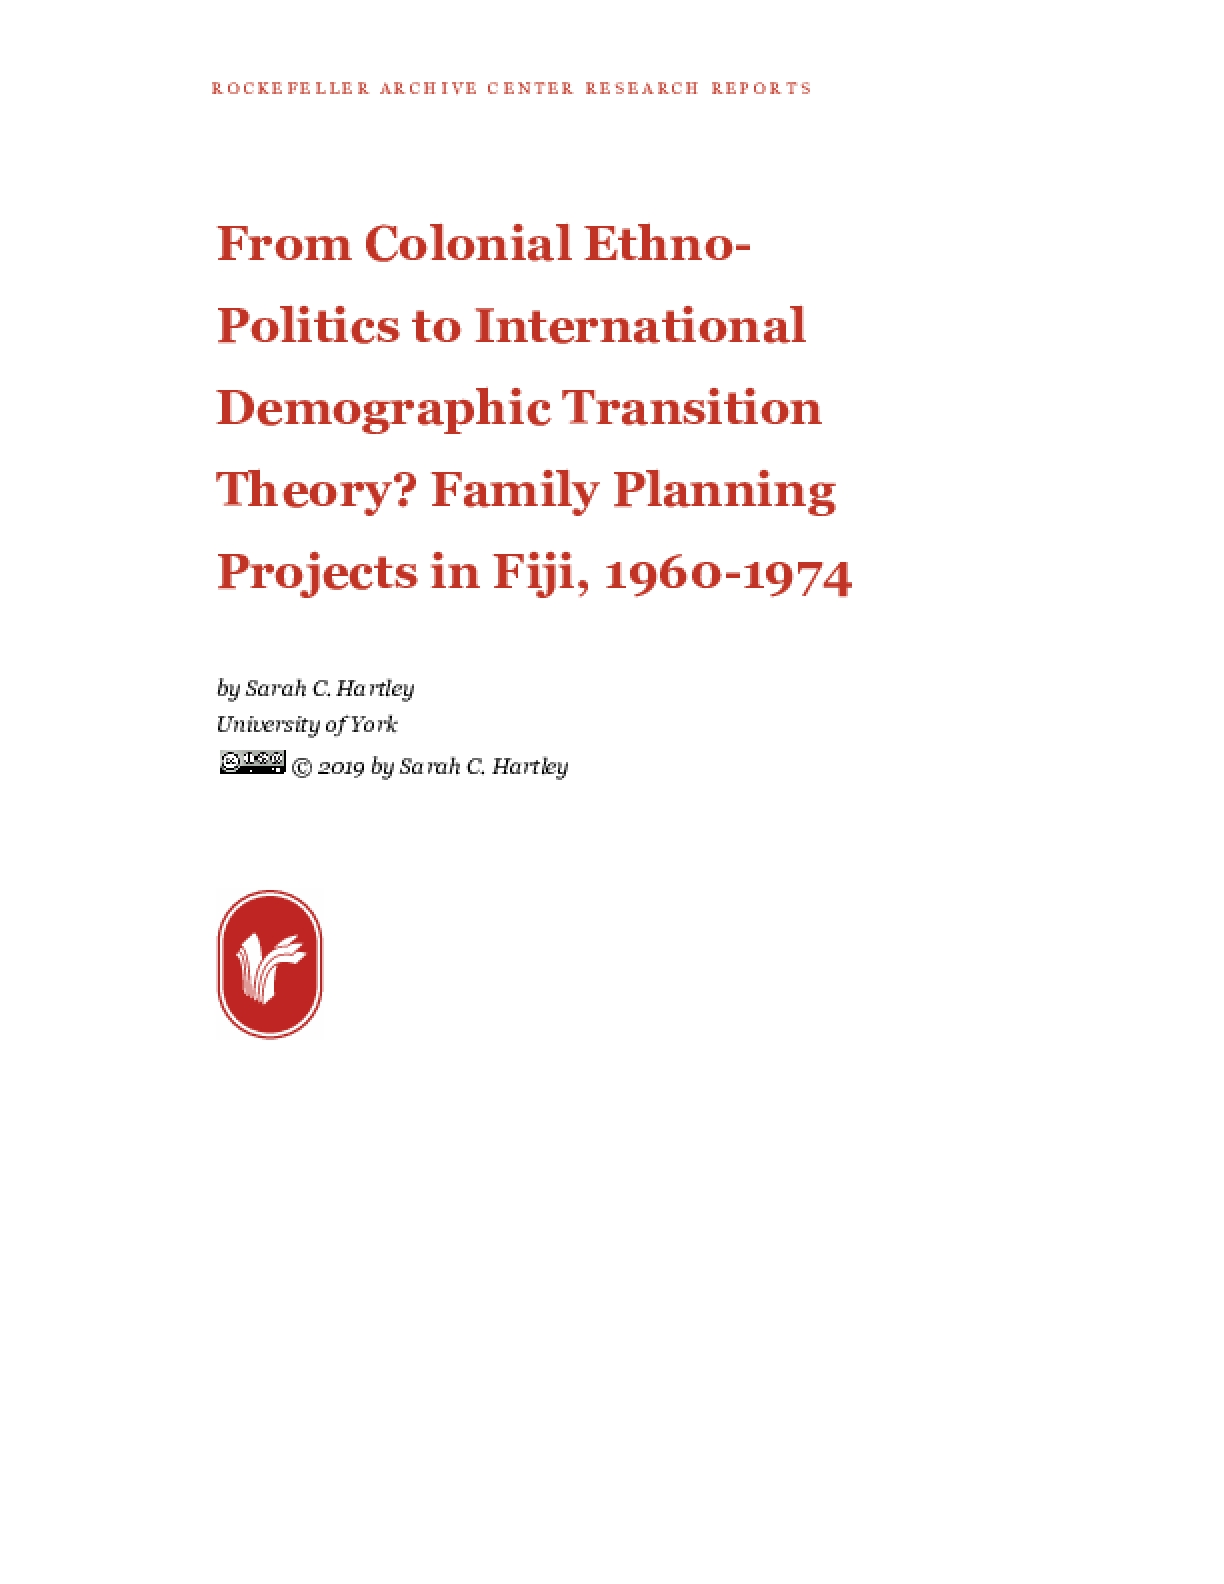 From Colonial Ethno-Politics to International Demographic Transition Theory? Family Planning Projects in Fiji, 1960-1974